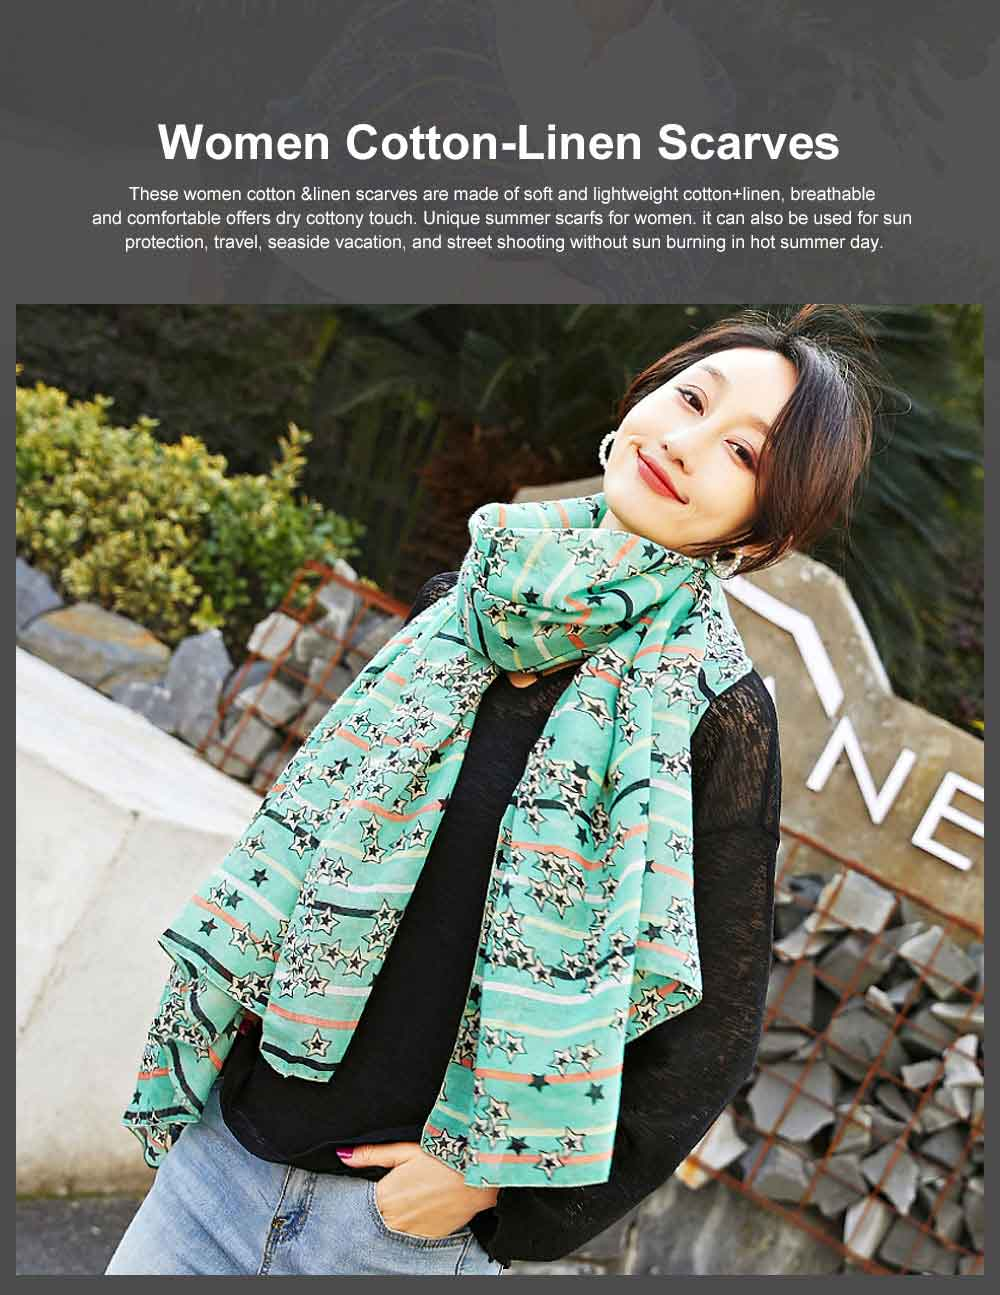 Women Cotton Linen Scarves Wild Print Sunscreen Beach Cover-up Shawl Fashion Accessories Best Gifts for women 0